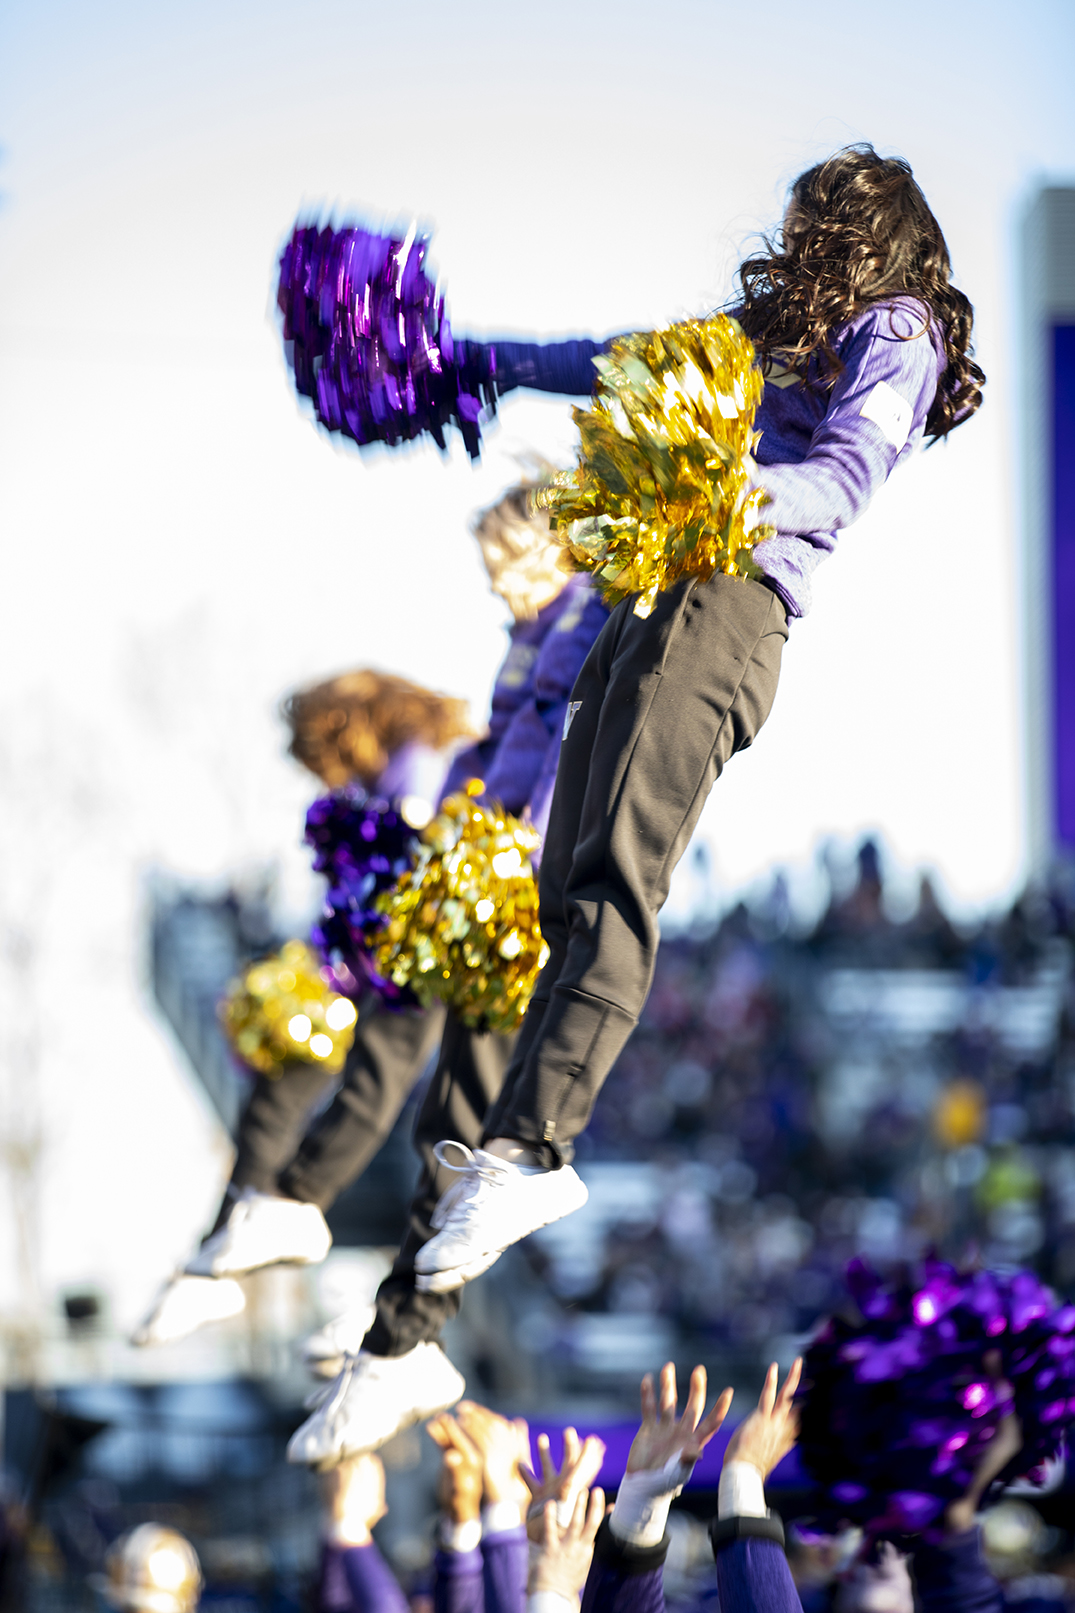 UW Cheer mid-routine during the 112th Apple Cup, which the Huskies won 31–13 in their seventh consecutive victory over Washington State University. Photo by Dennis Wise